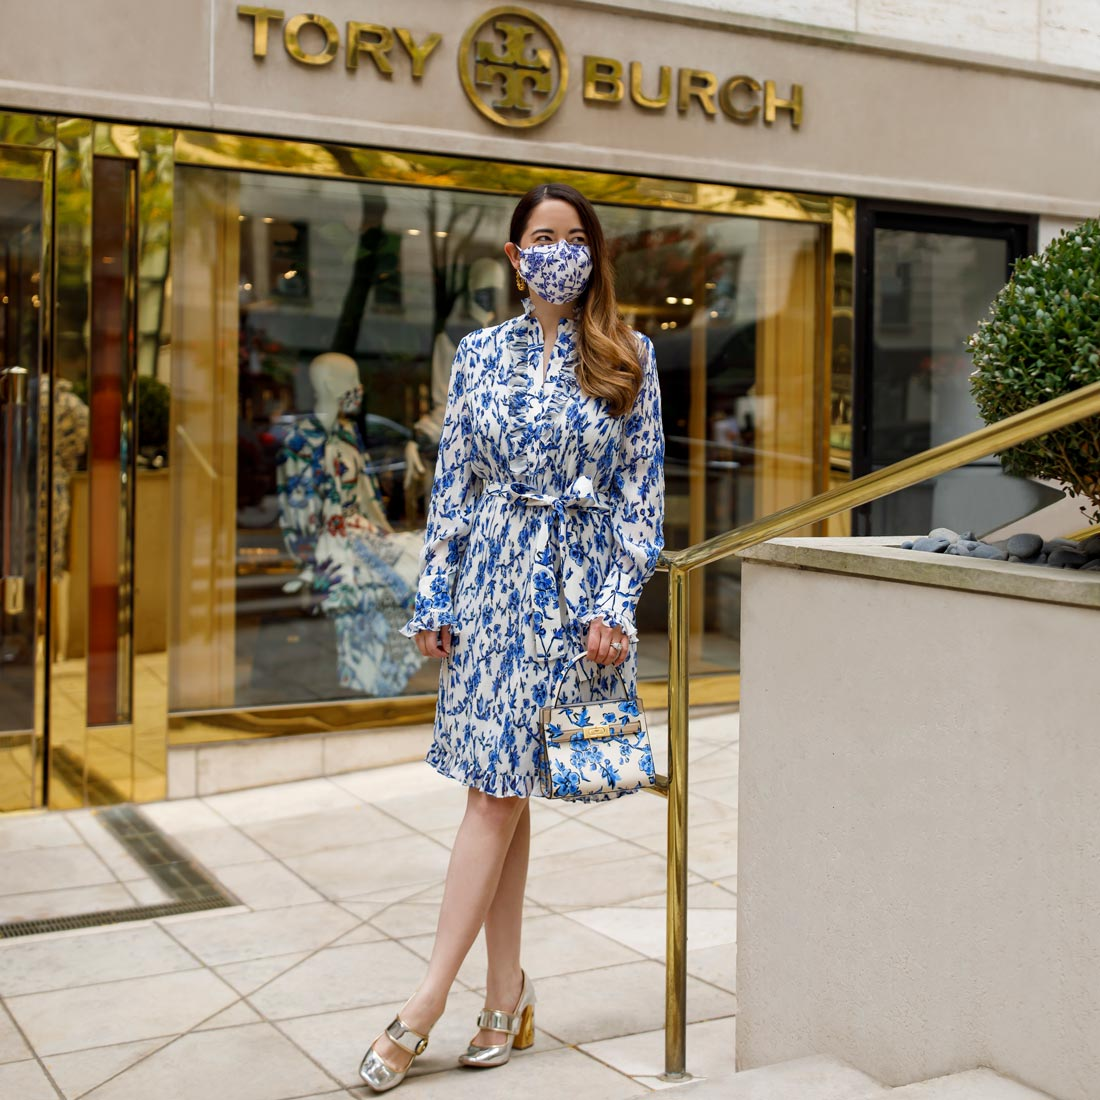 Jennifer Lake Tory Burch